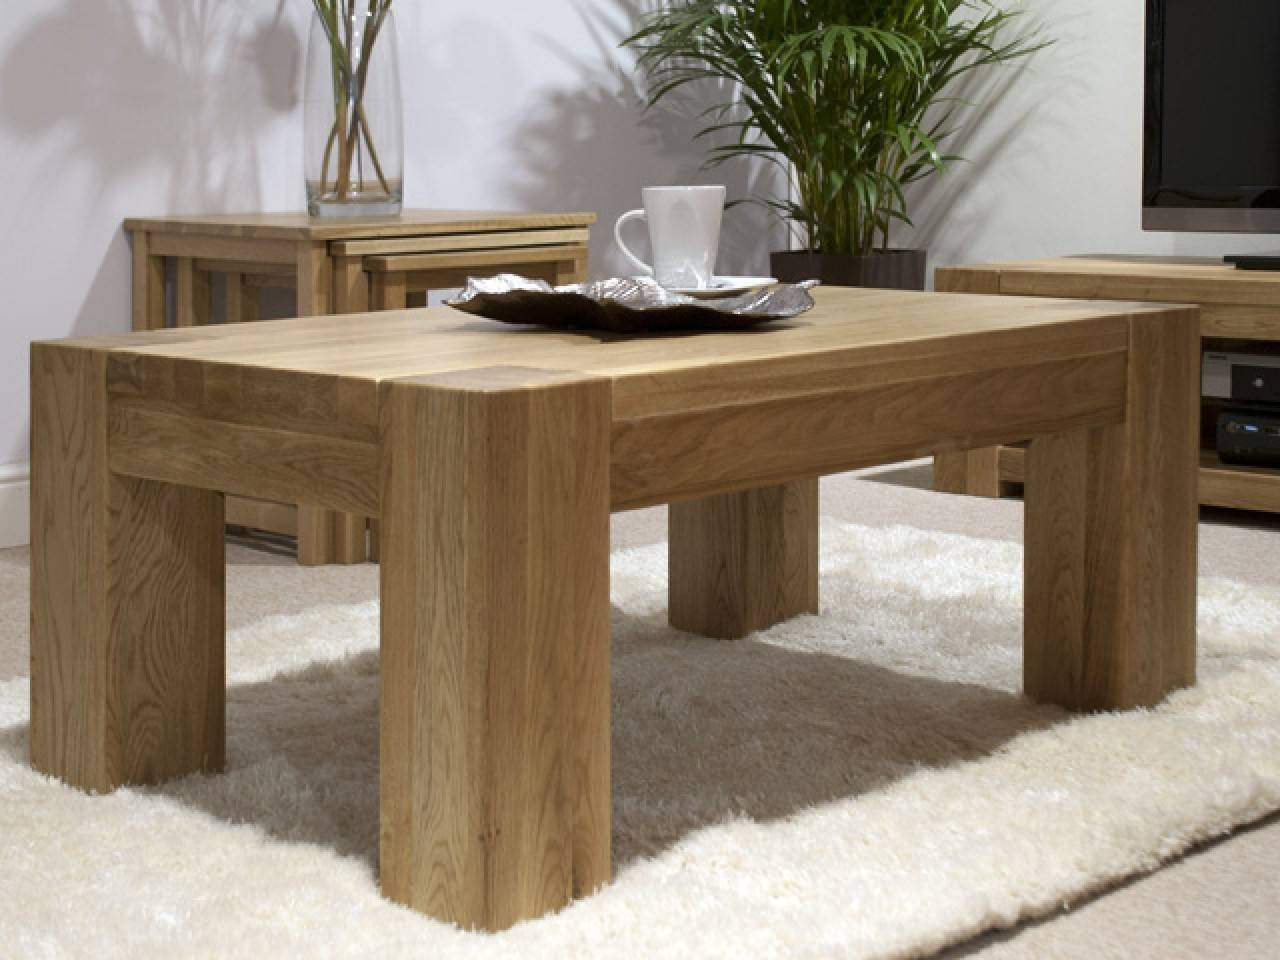 Coffee Tables: Appealing Large Coffee Tables Ideas Large Coffee with regard to Chunky Coffee Tables (Image 11 of 30)